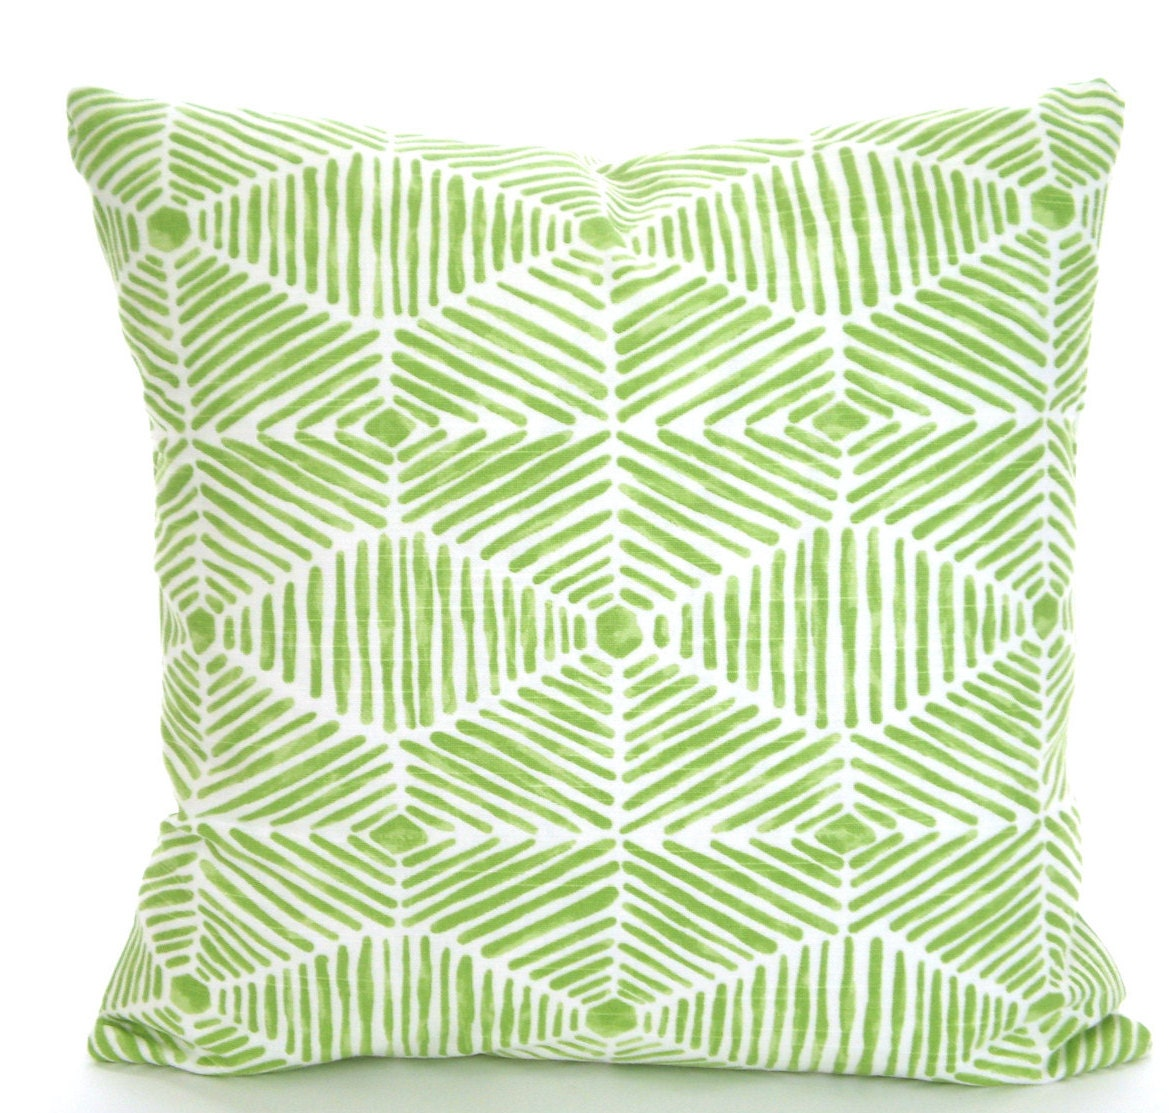 Decorative Pillow Wraps : Green Decorative Throw Pillow Covers Cushion Covers Kiwi